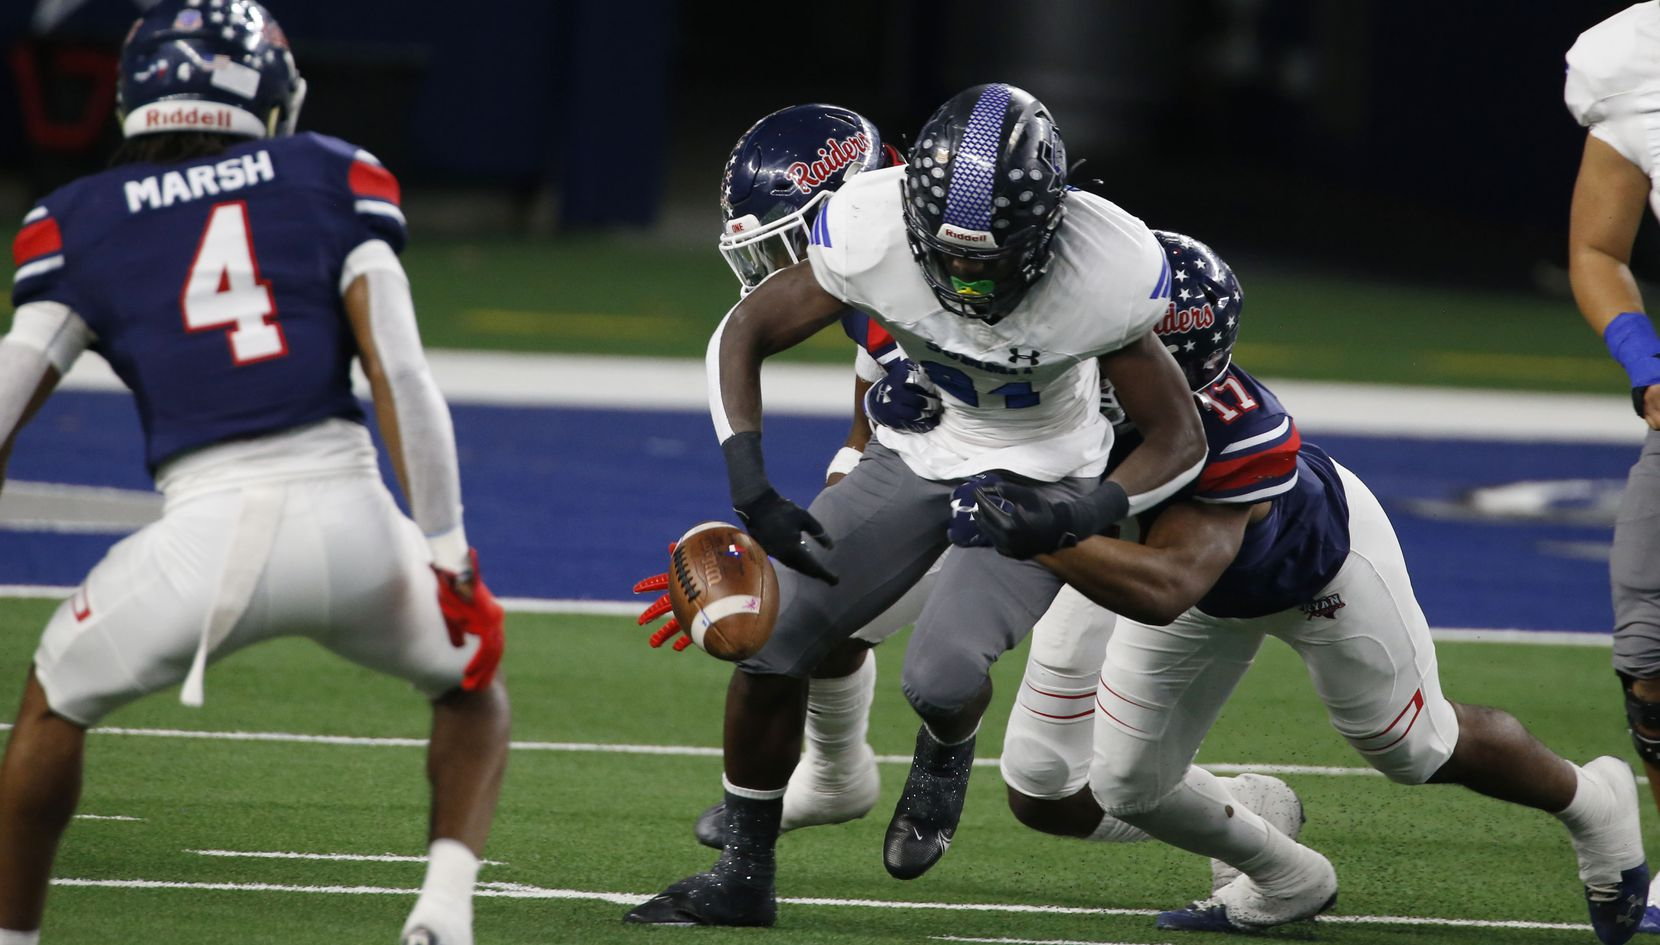 Mansfield Summit's Desmond Walton (84) fumbles the football, after being hit by Ryan's Michael Gee (17). The ball was scooped up by Denton Ryan defender Ty Marsh (4) and advanced for a touchdown during the first half of the Class 5A Division I state semifinal football playoff gameat AT&T Stadium in Arlington on Friday, January 8, 2021. (John F. Rhodes / Special Contributor)